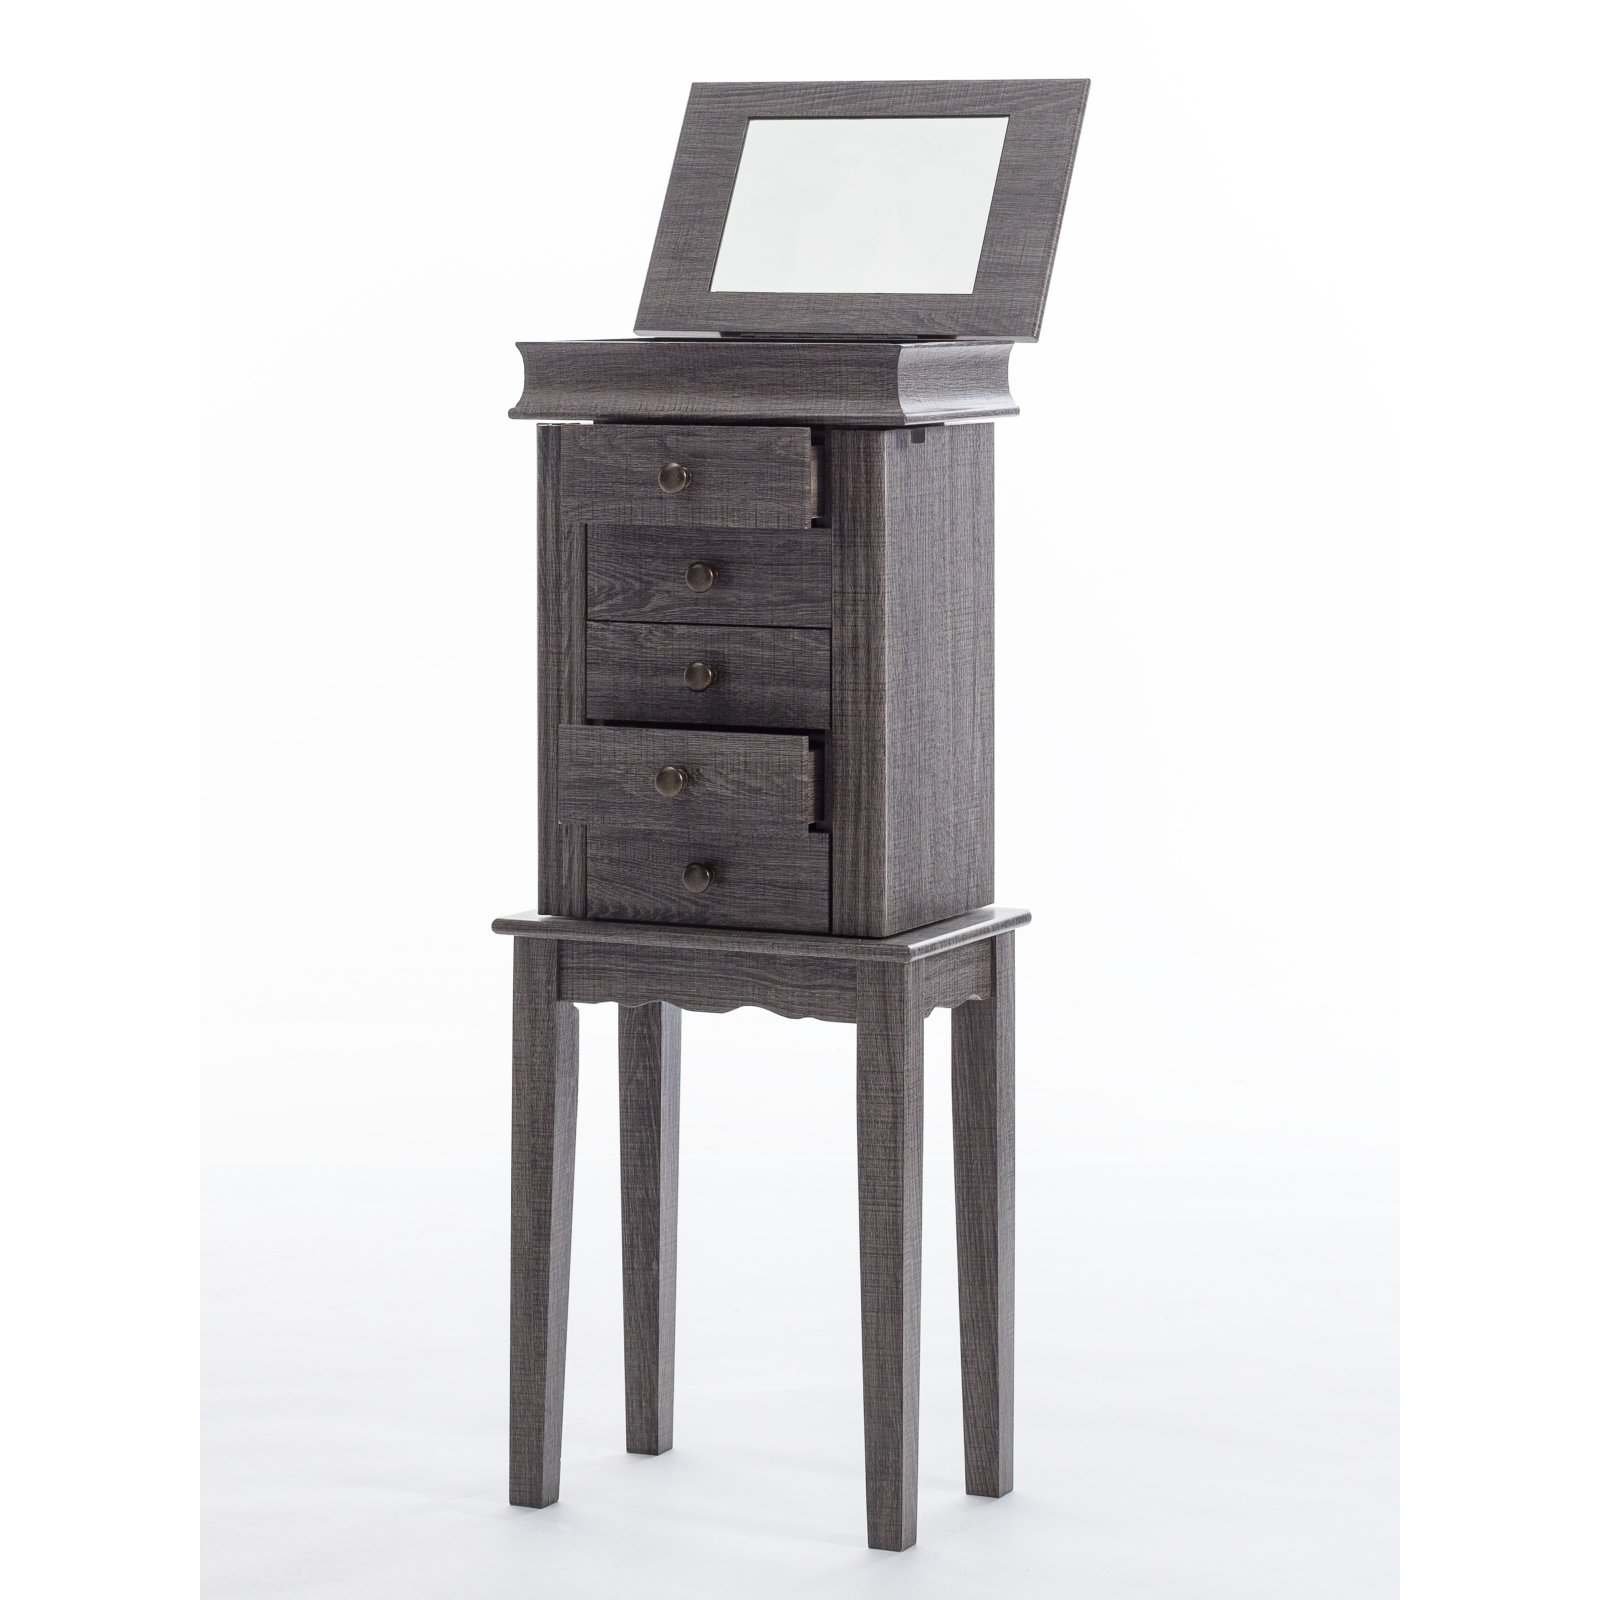 bdf69c50d Mainstays Small Space Jewelry Armoire - Weathered Gray - Walmart.com